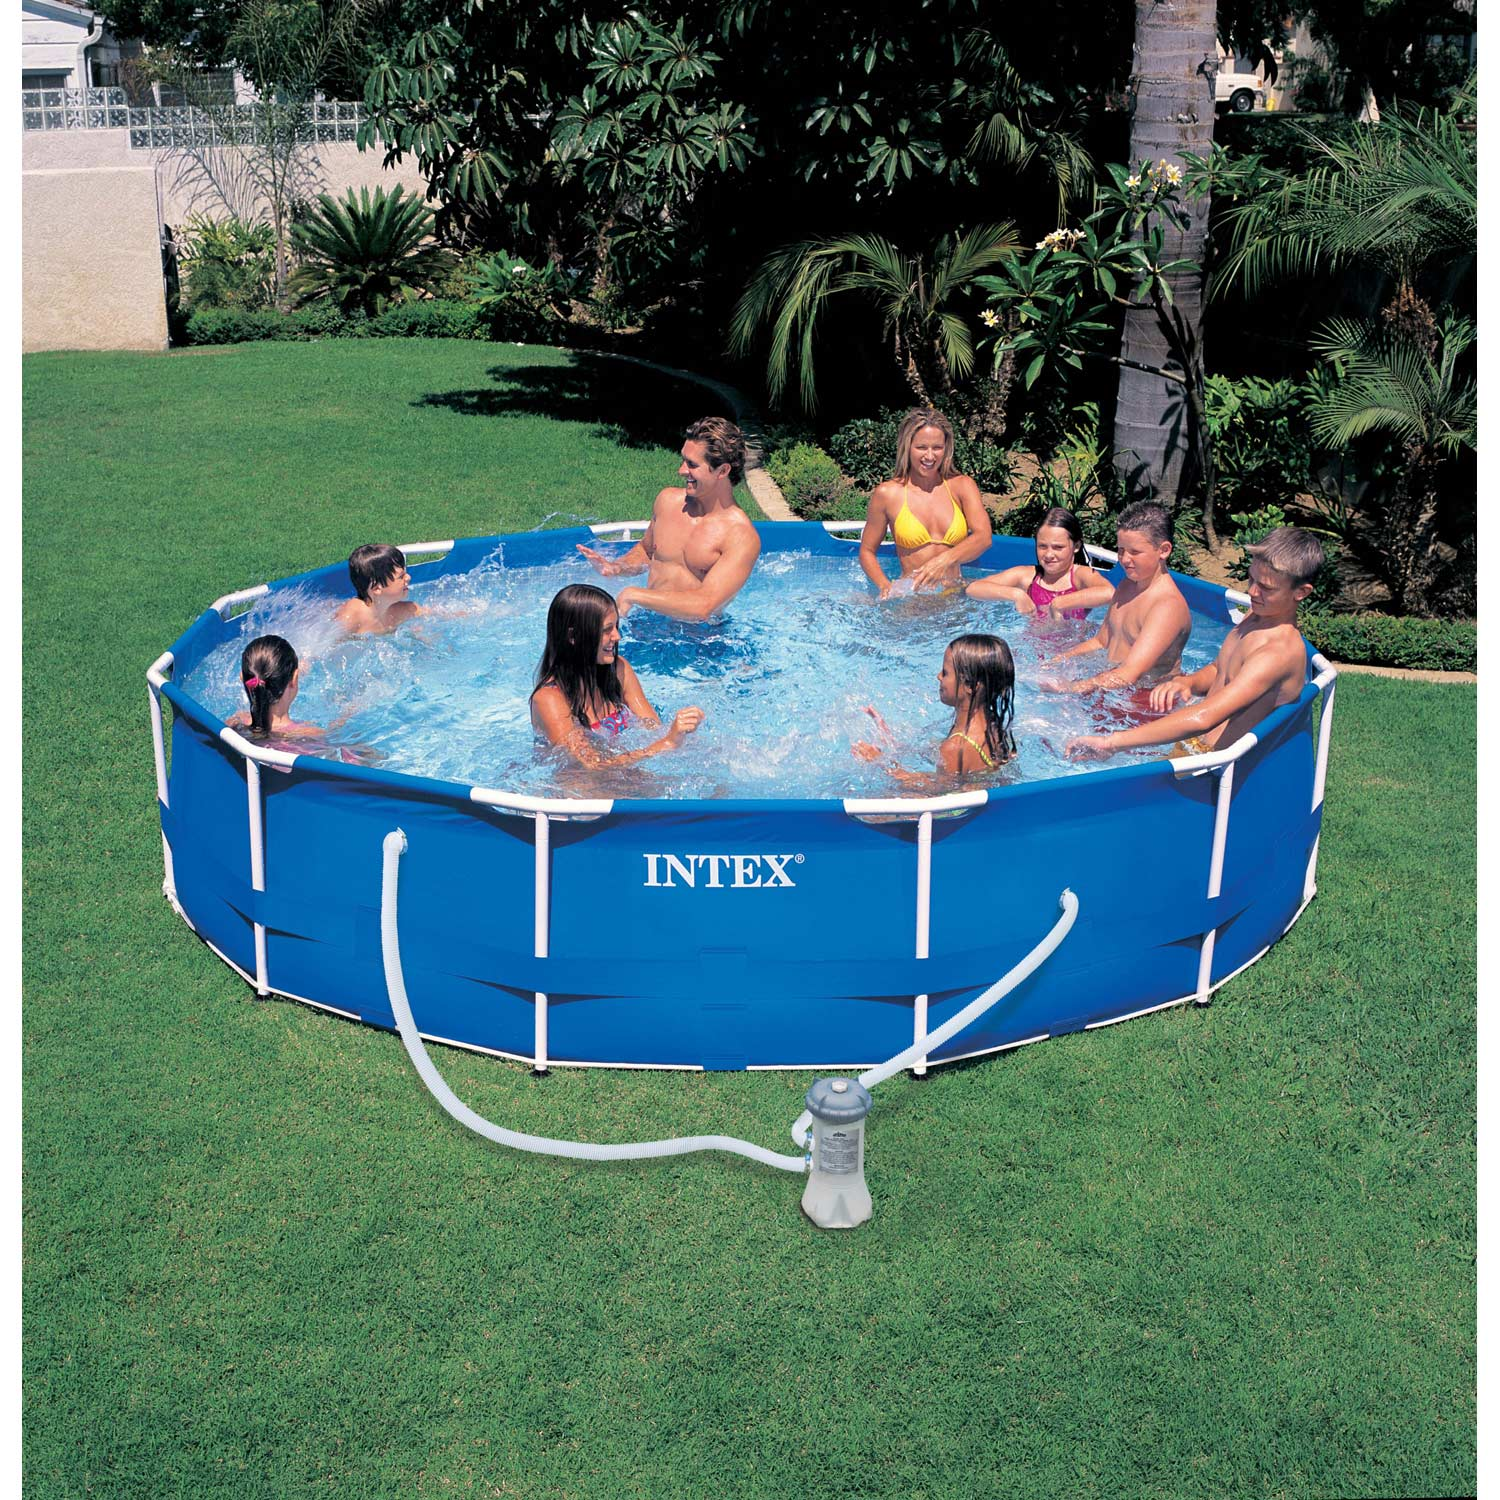 Piscine hors sol autoportante tubulaire metal frame intex for Piscine hors sol xxl